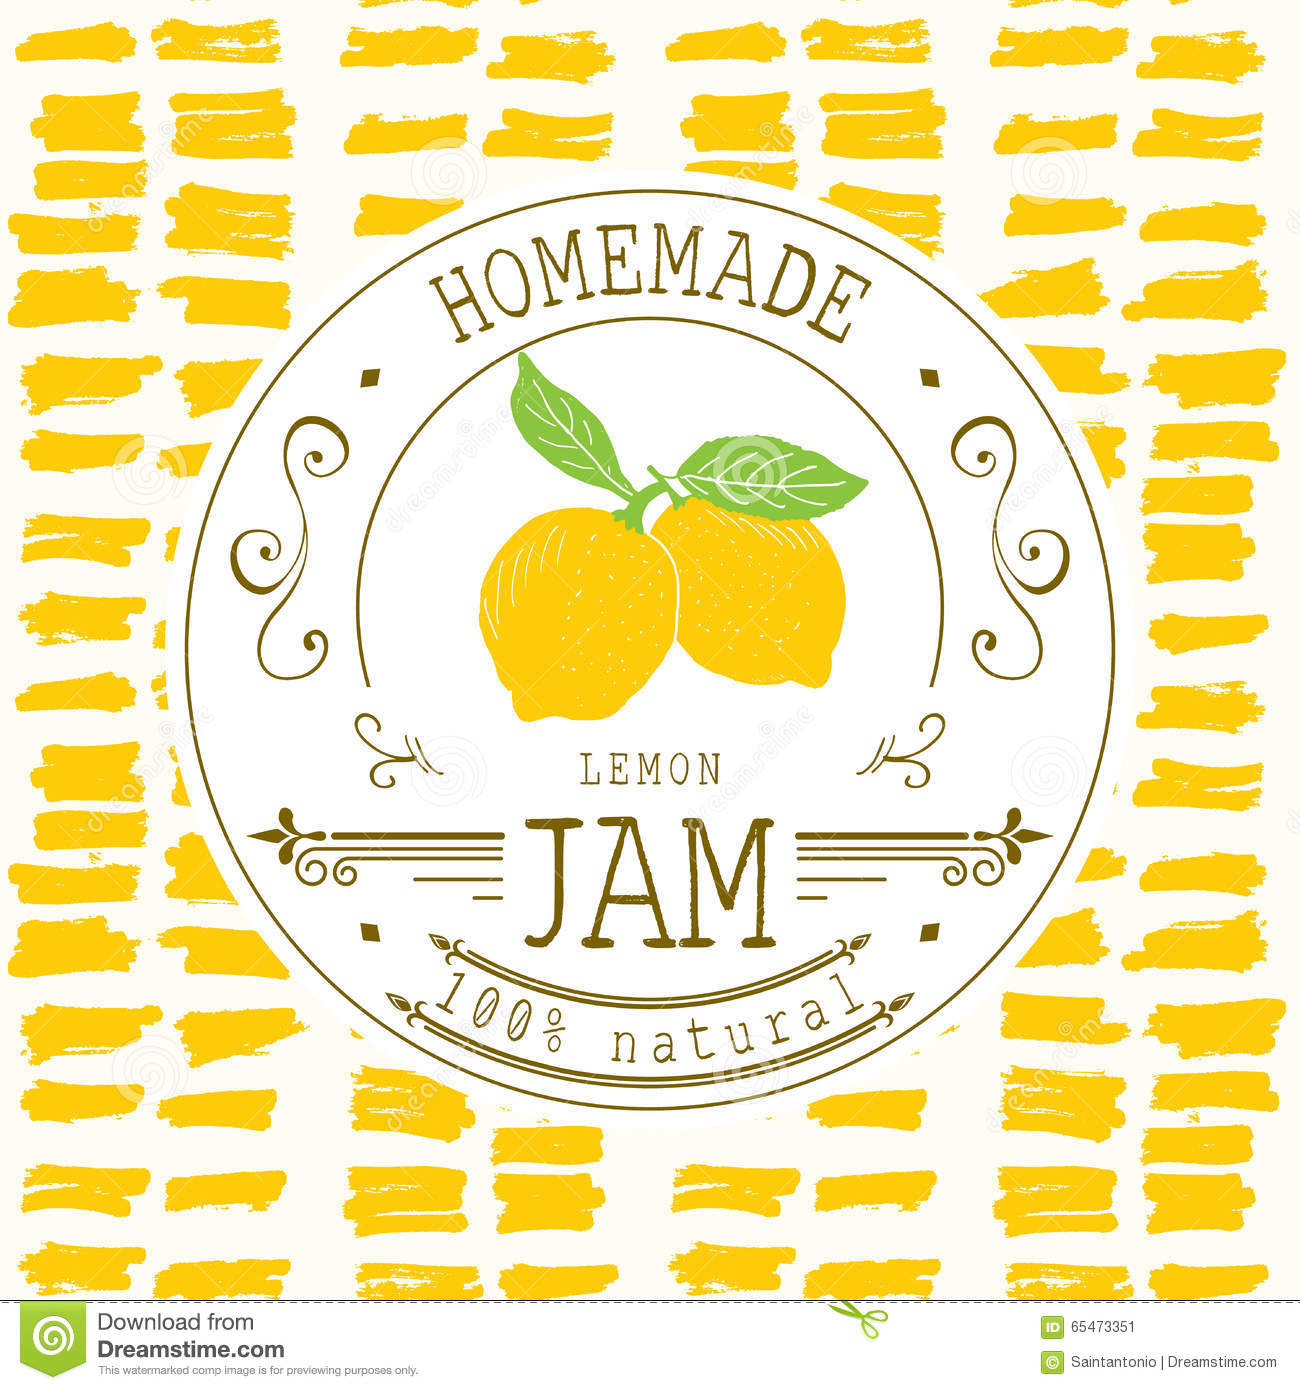 Jam Label Design Template For Lemon Dessert Product With Hand – Product Label Template